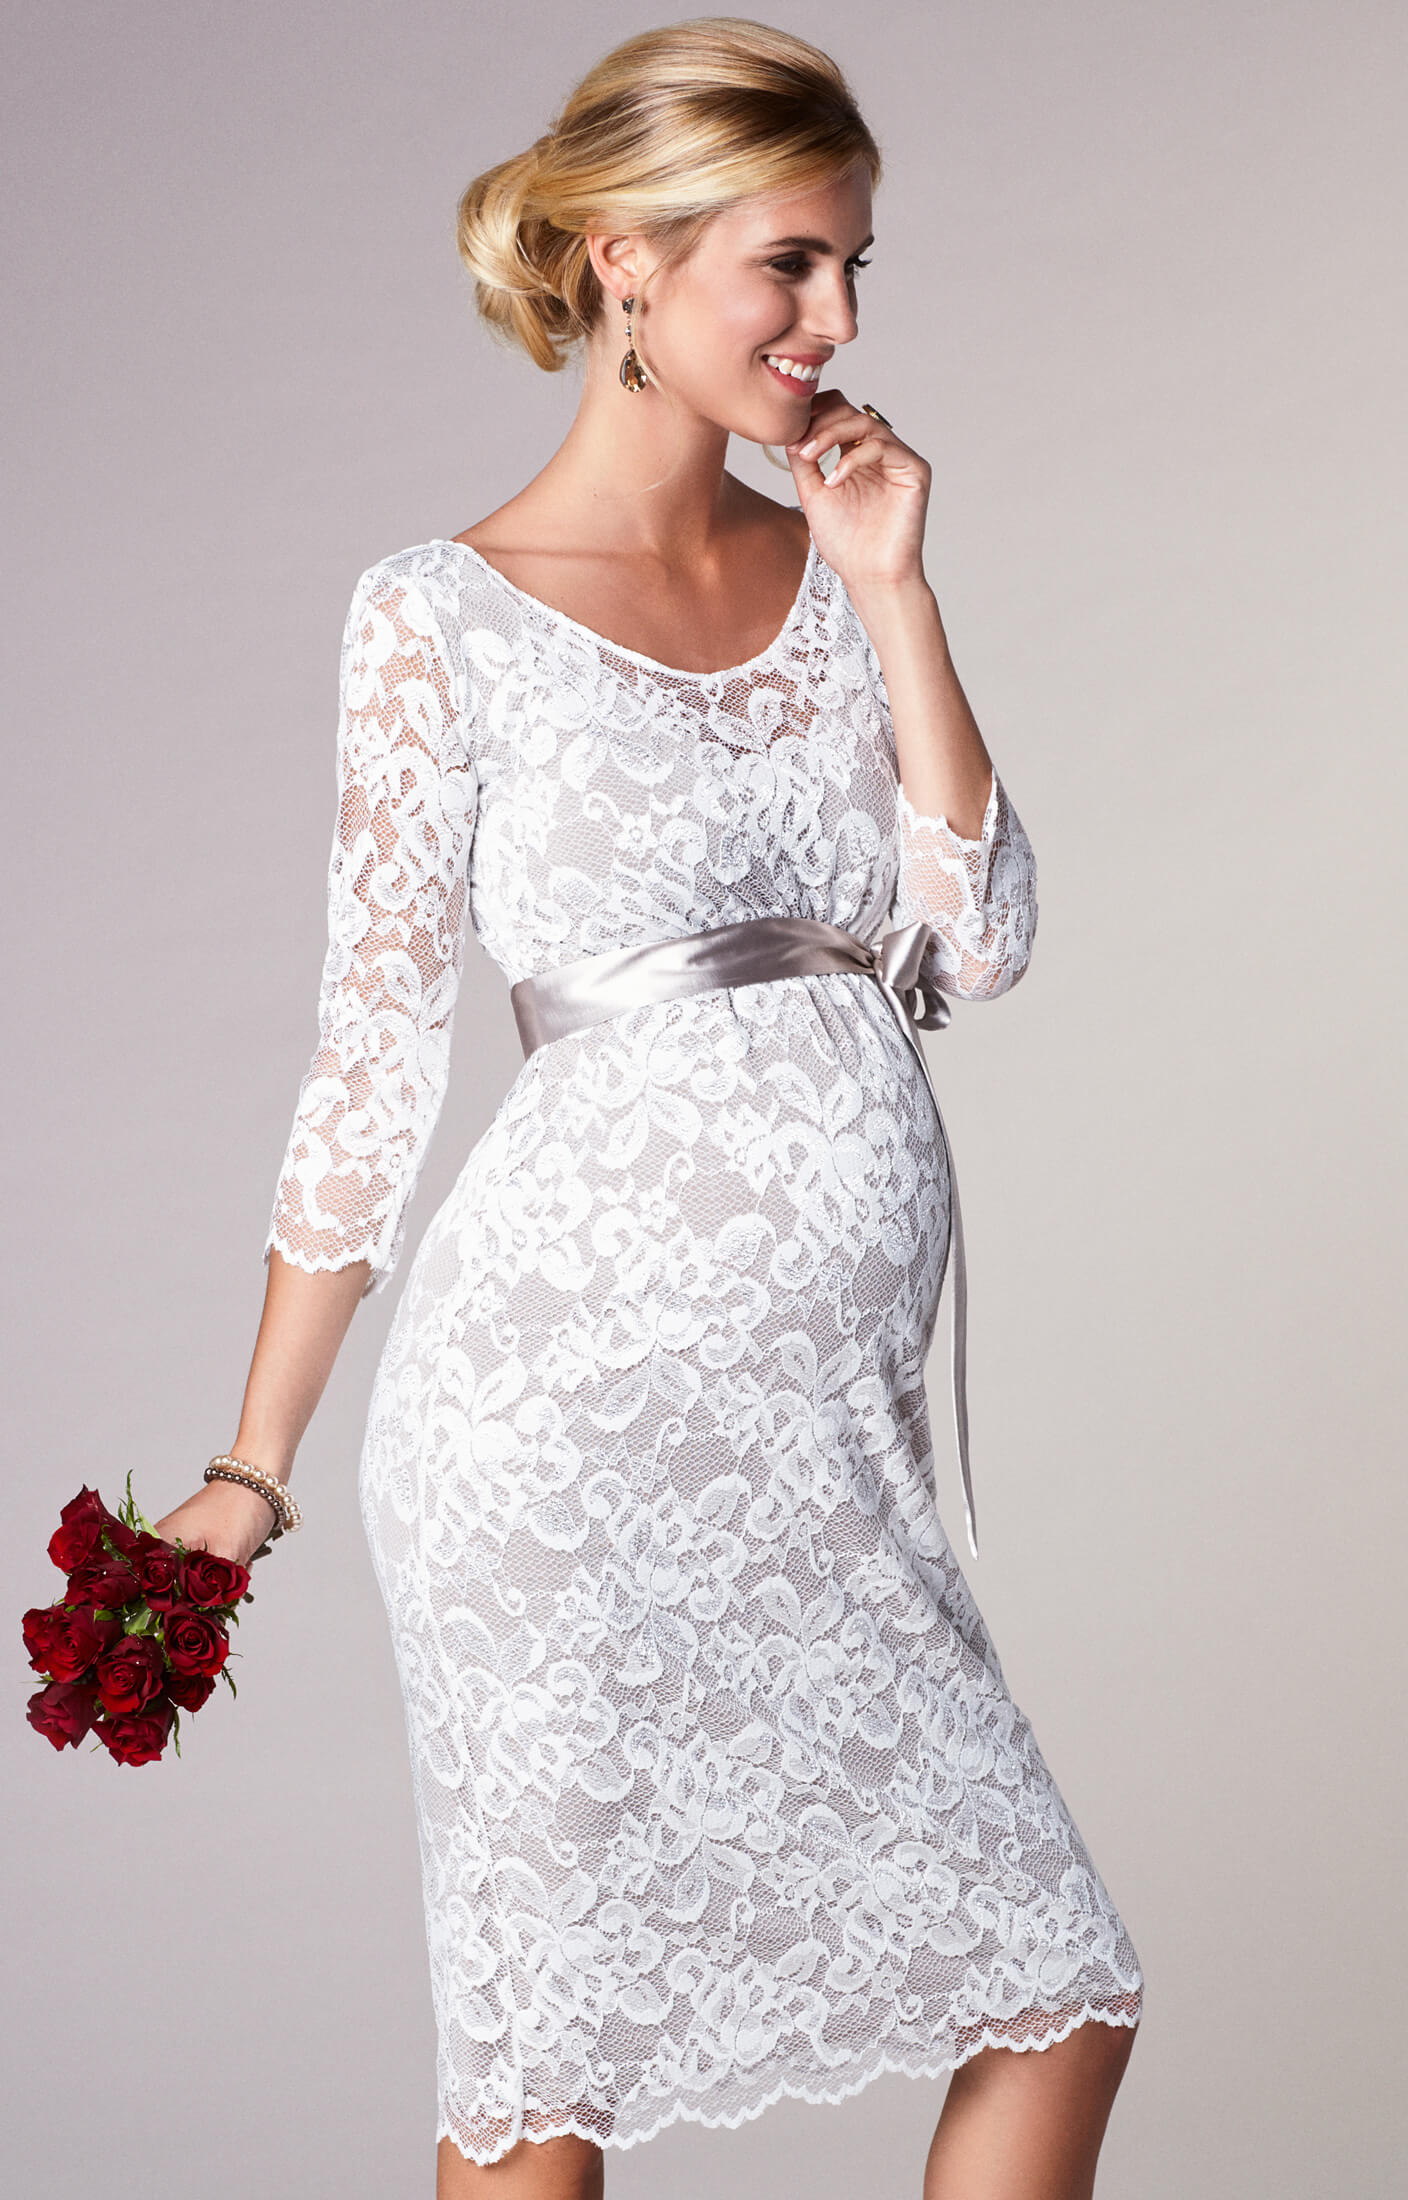 Charlotte maternity dress oyster cream maternity wedding dresses charlotte maternity dress oyster cream by tiffany rose ombrellifo Gallery